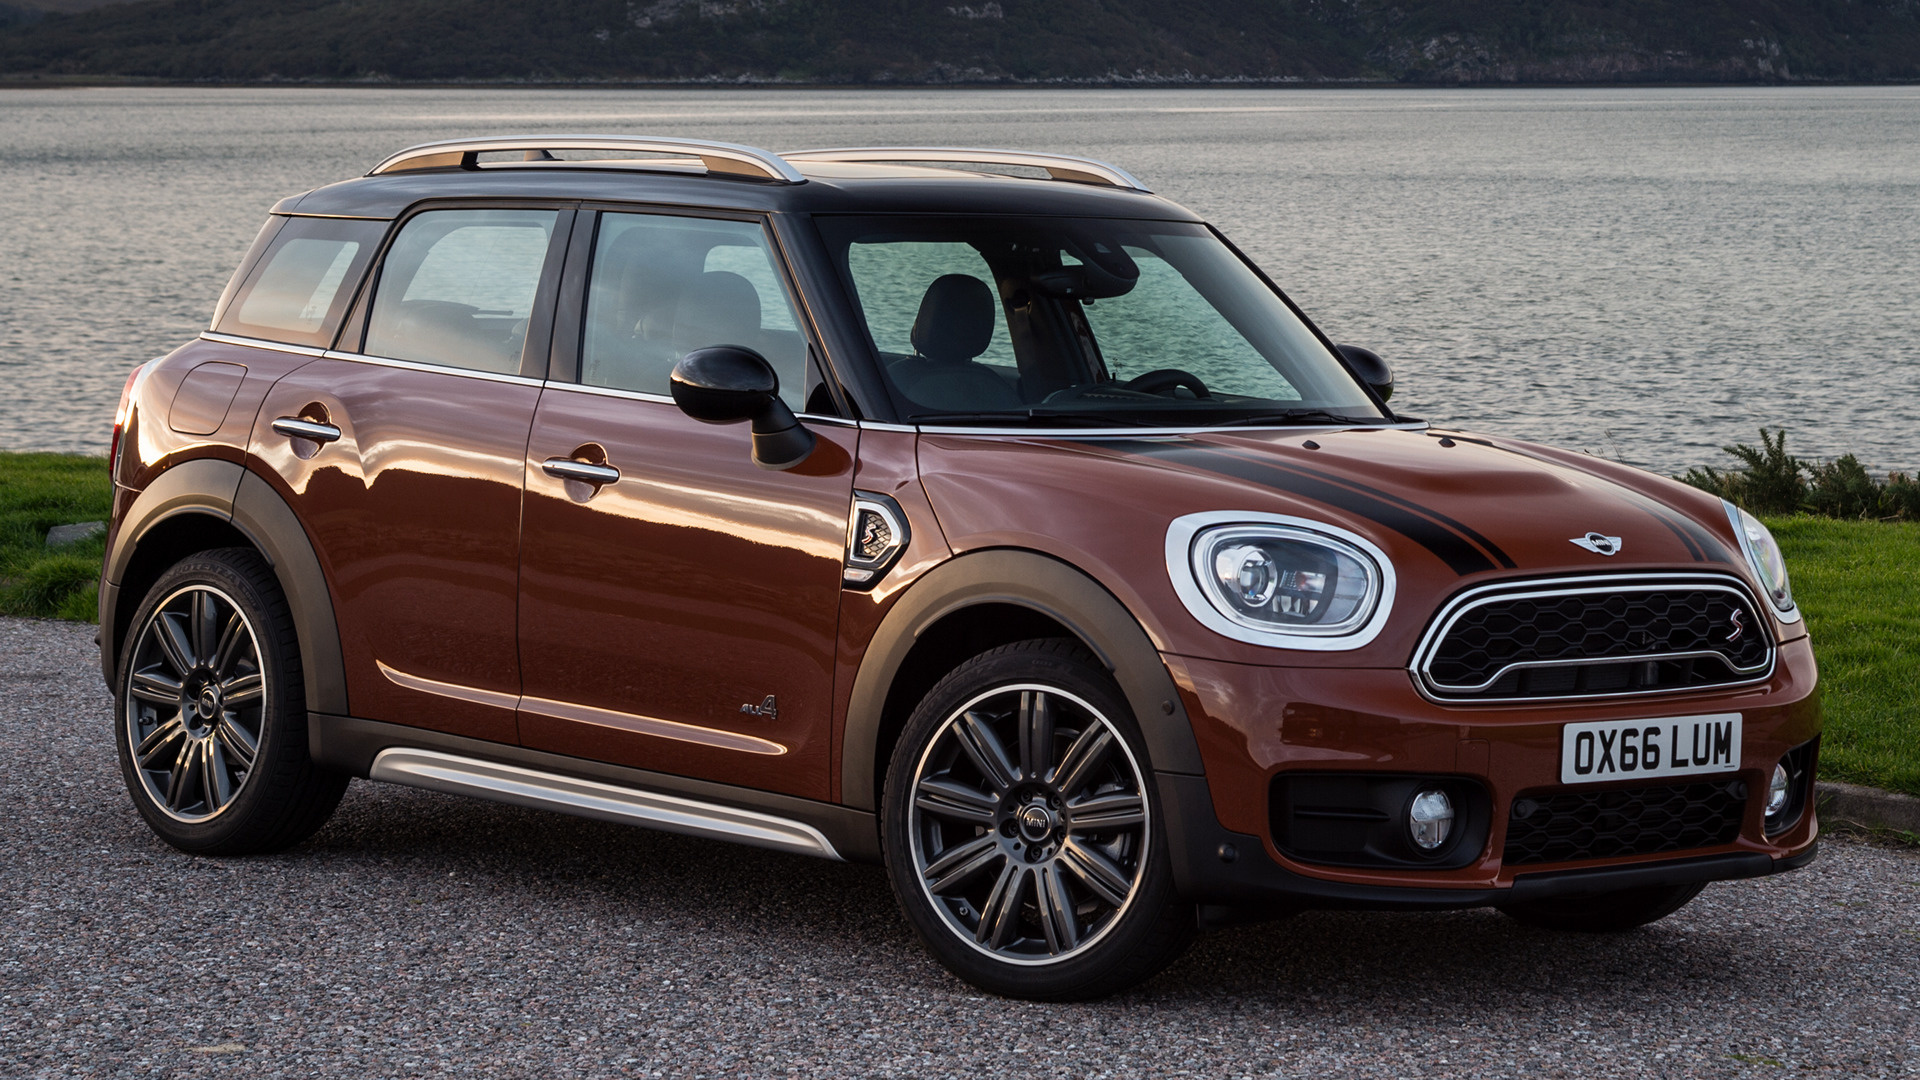 mini cooper s countryman 2017 wallpapers and hd images car pixel. Black Bedroom Furniture Sets. Home Design Ideas